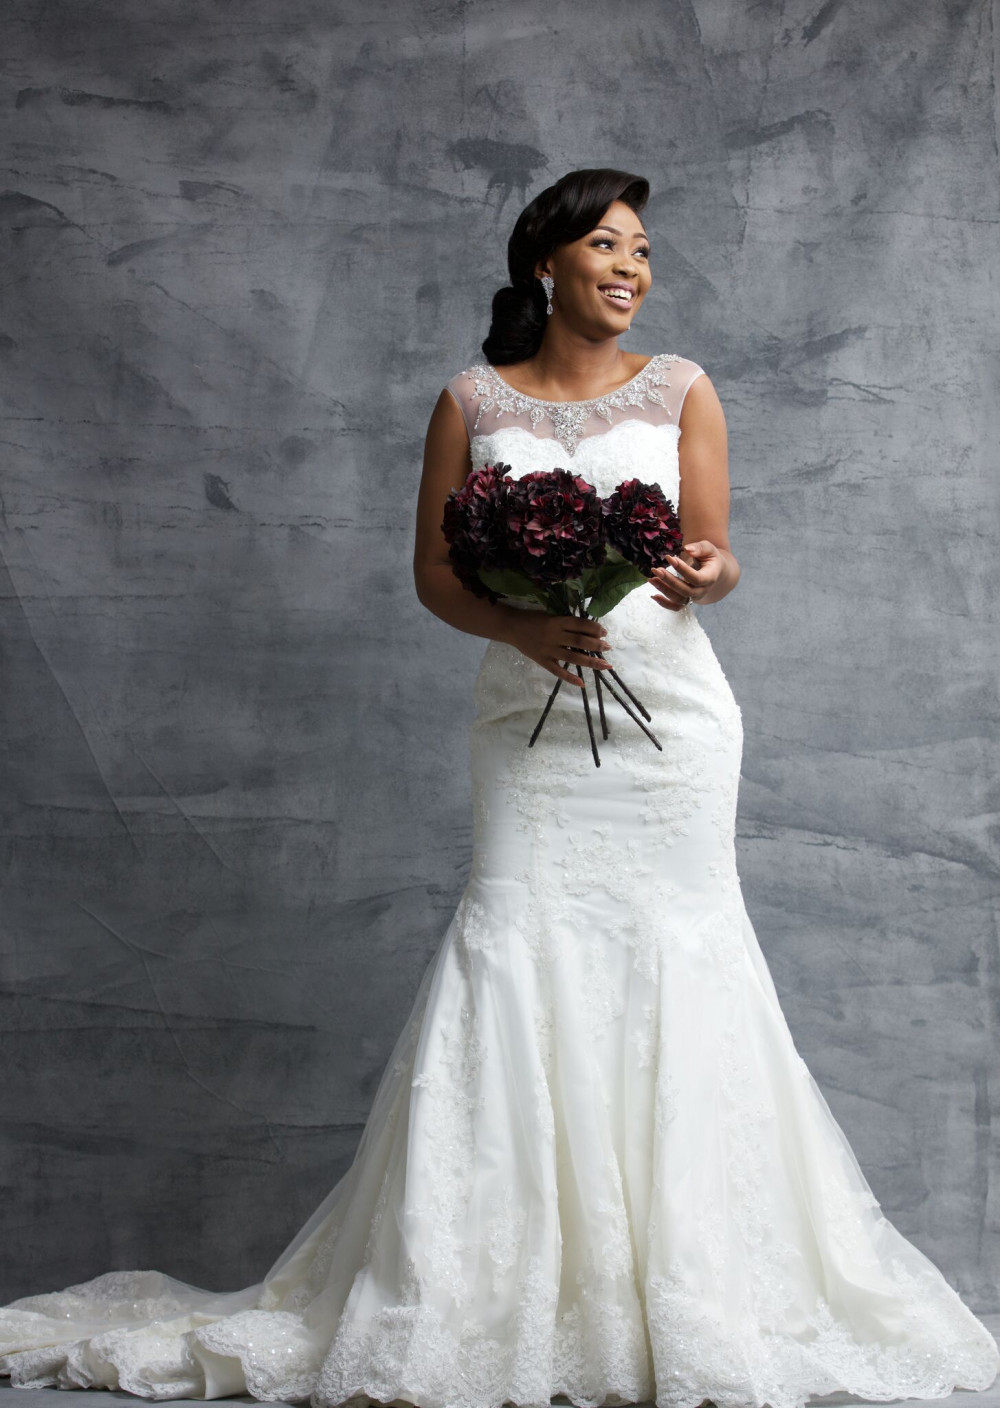 Helena: She's your modern classic bride with an extra bit of tasteful sparkle.